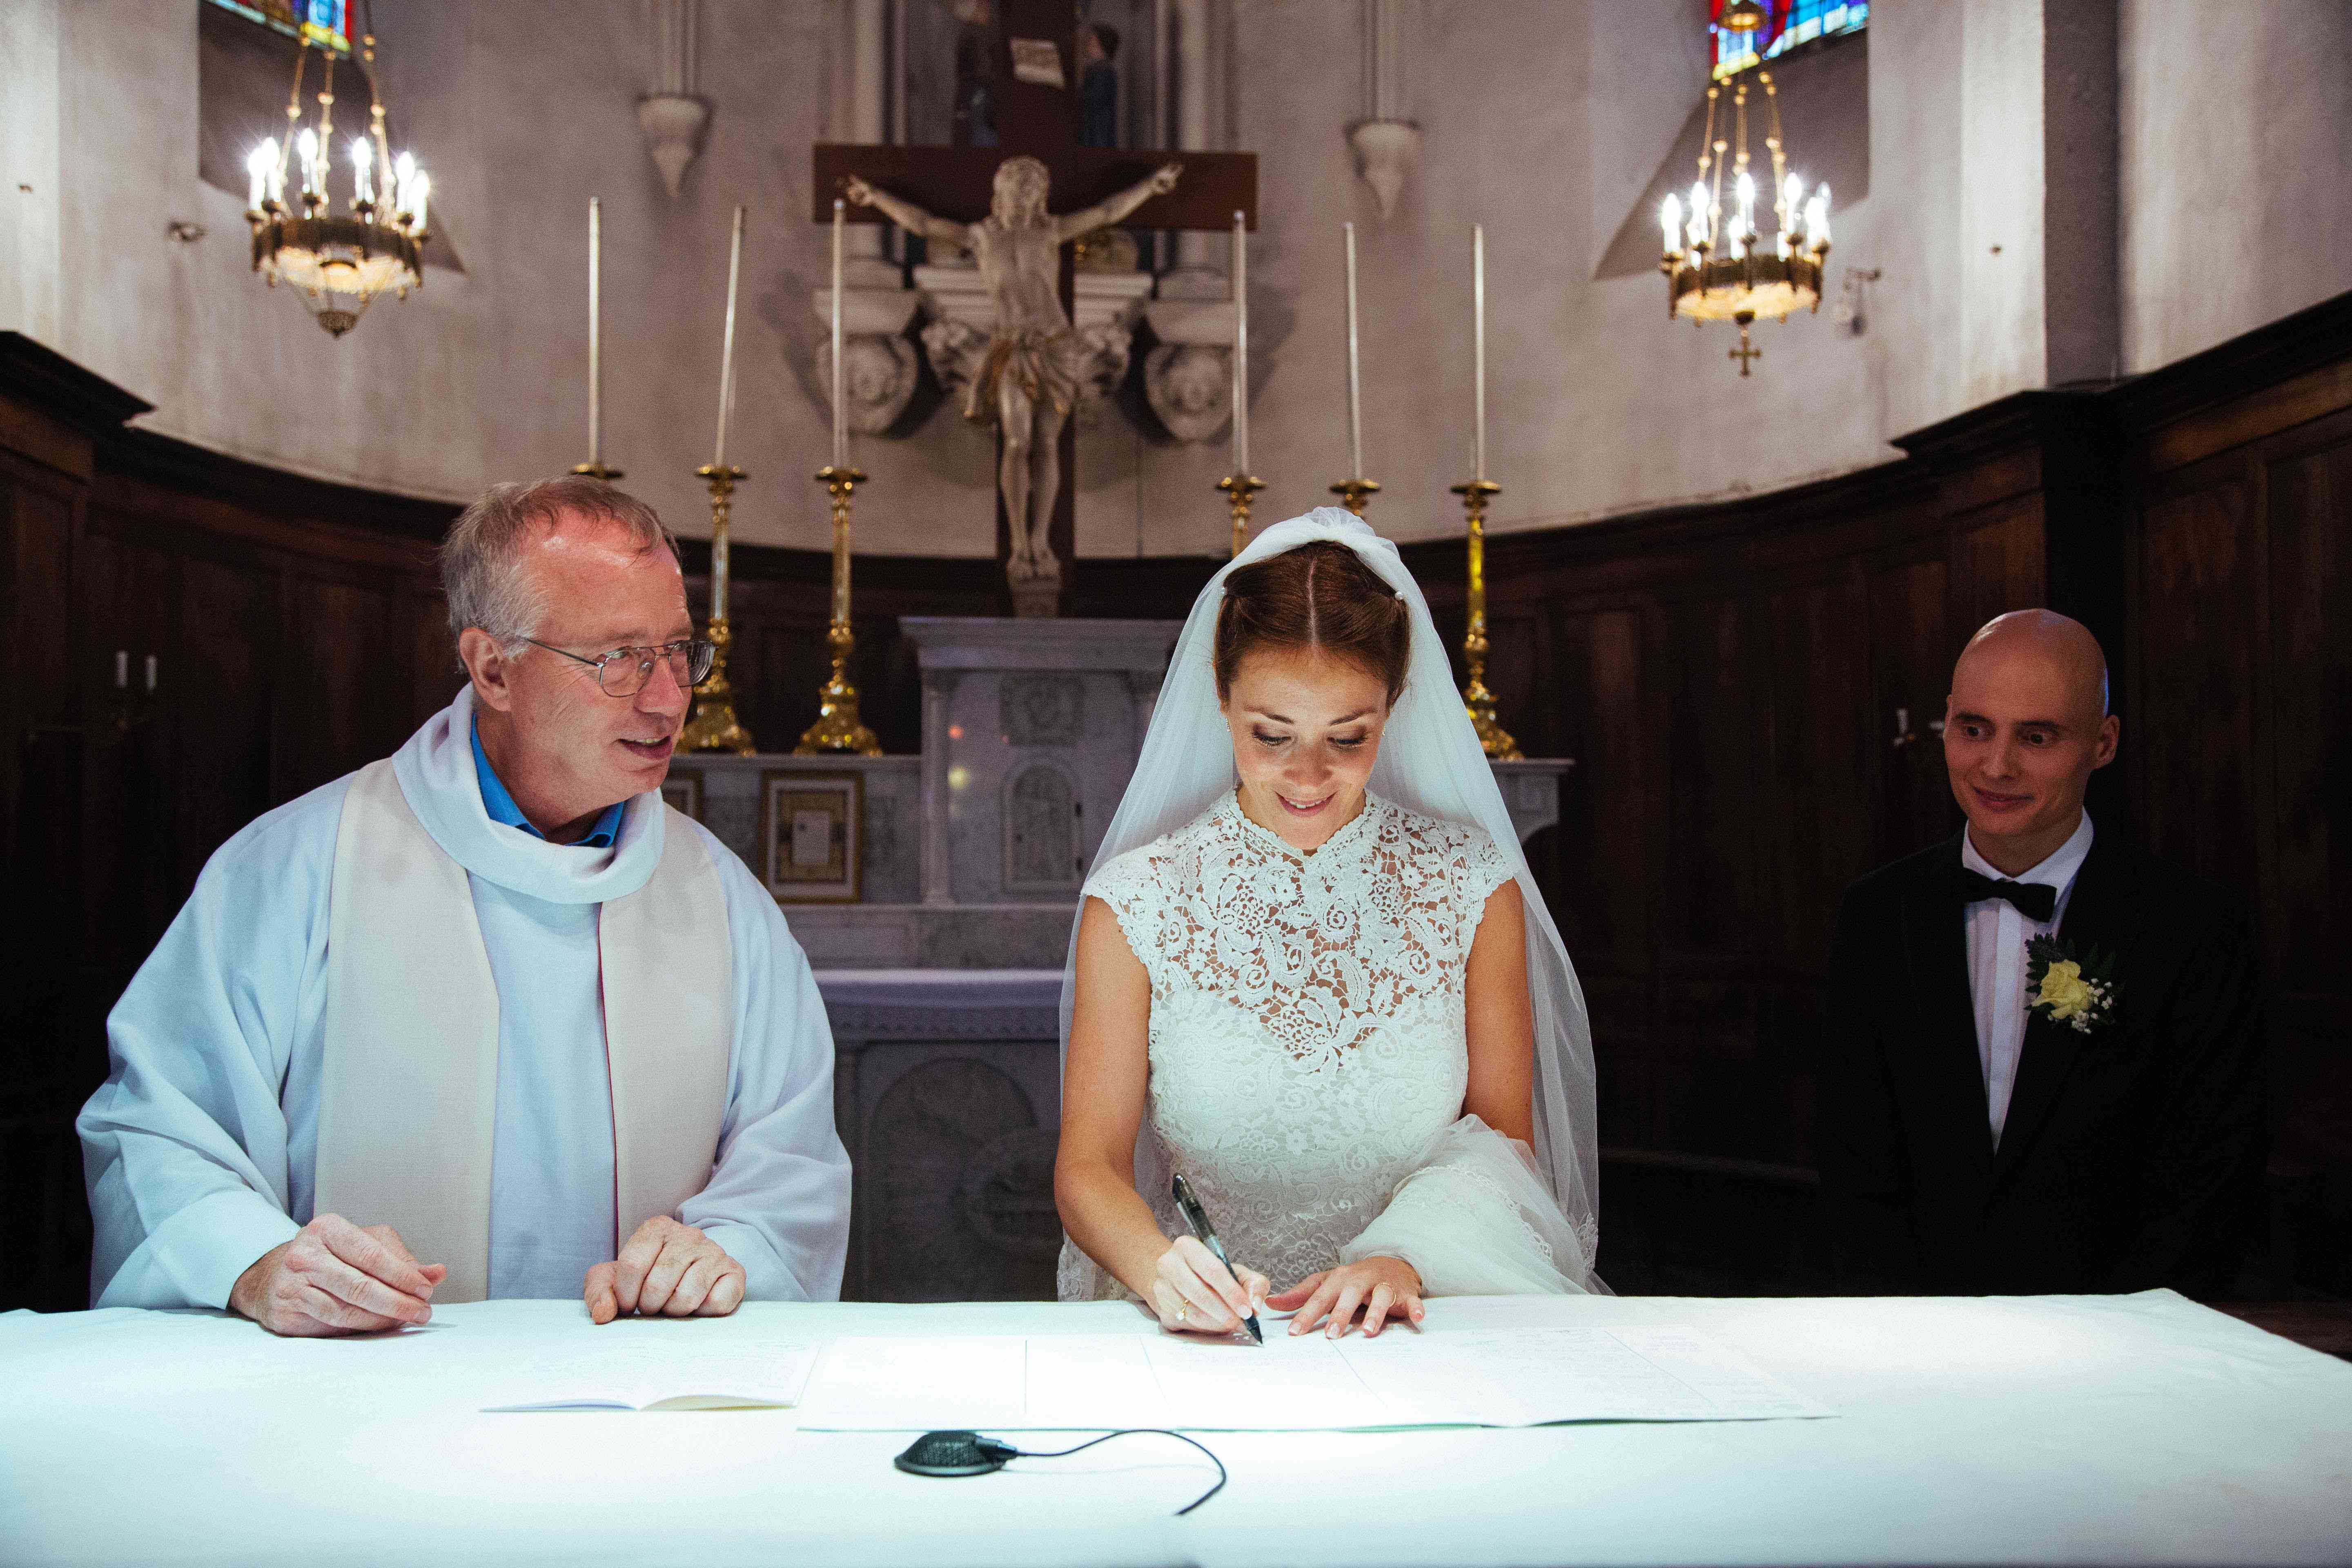 Bride signing document with priest